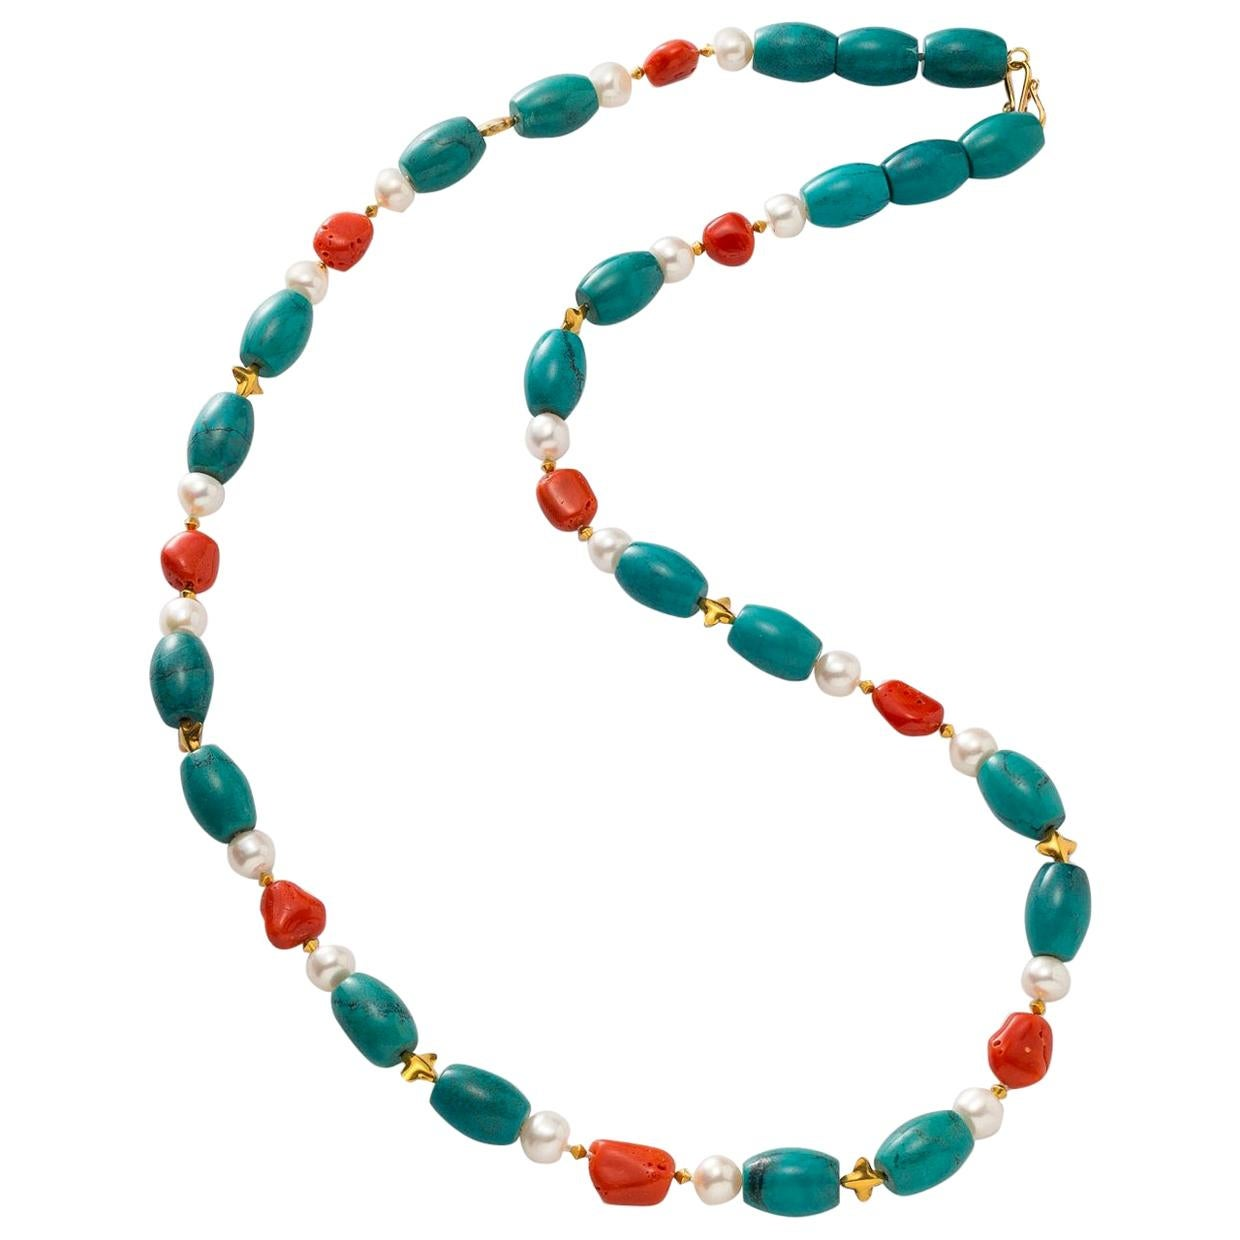 Necklace with Turquoise, Coral Pebbles, Freshwater Pearls and 18 Karat Gold